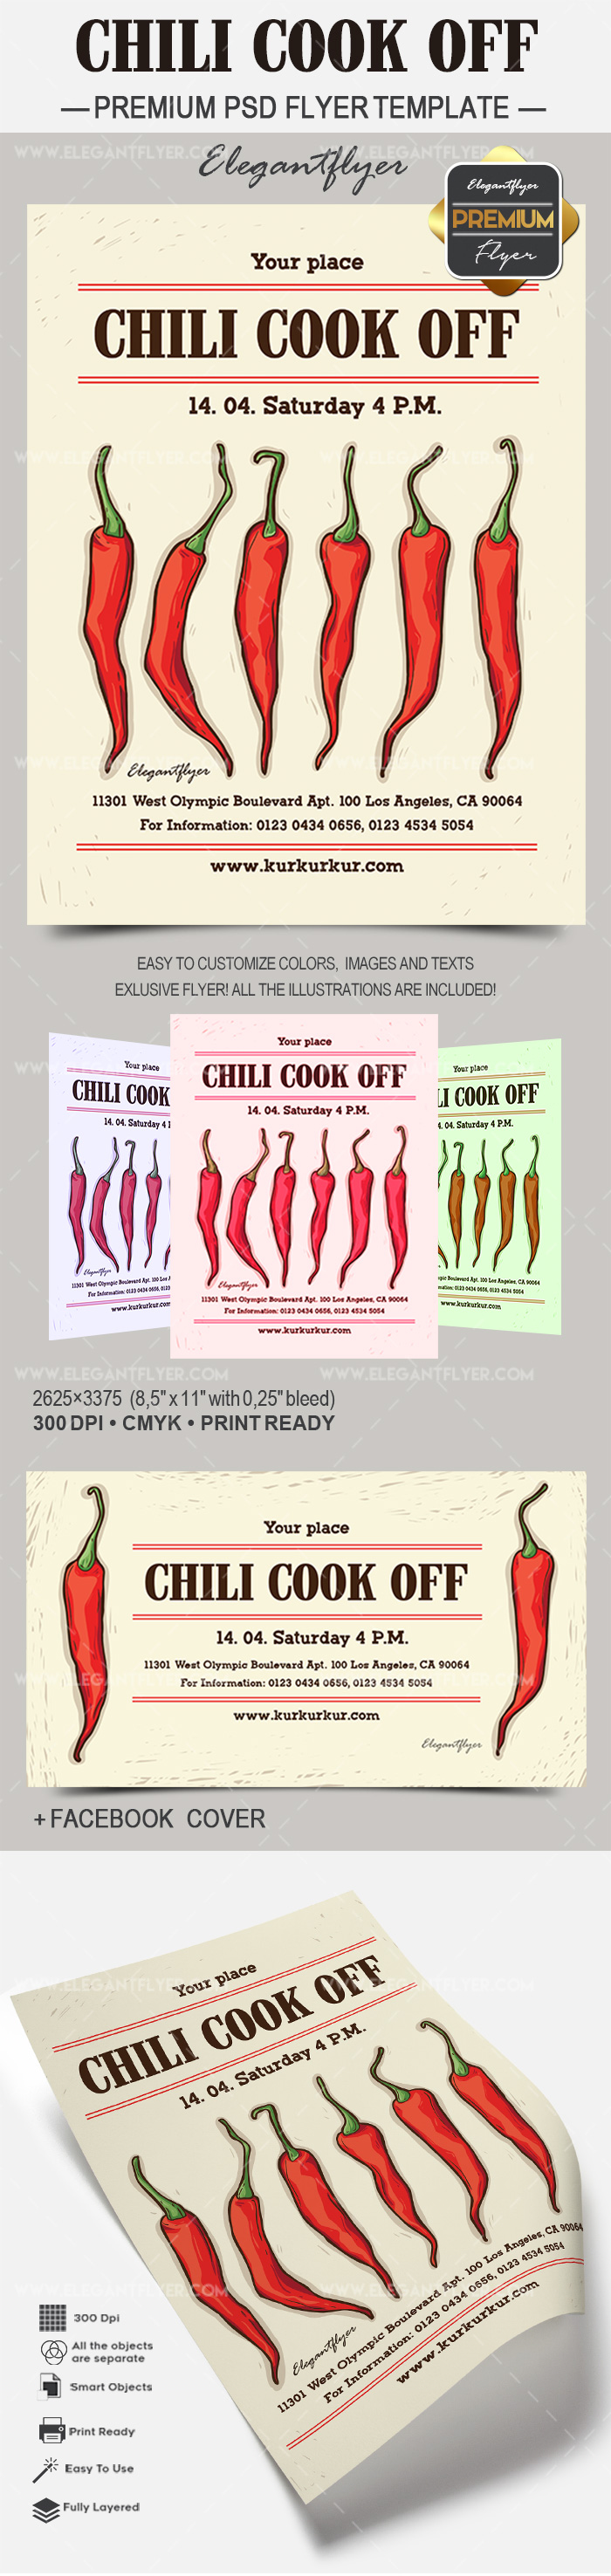 Chili Cook Off Flyer Template – by ElegantFlyer